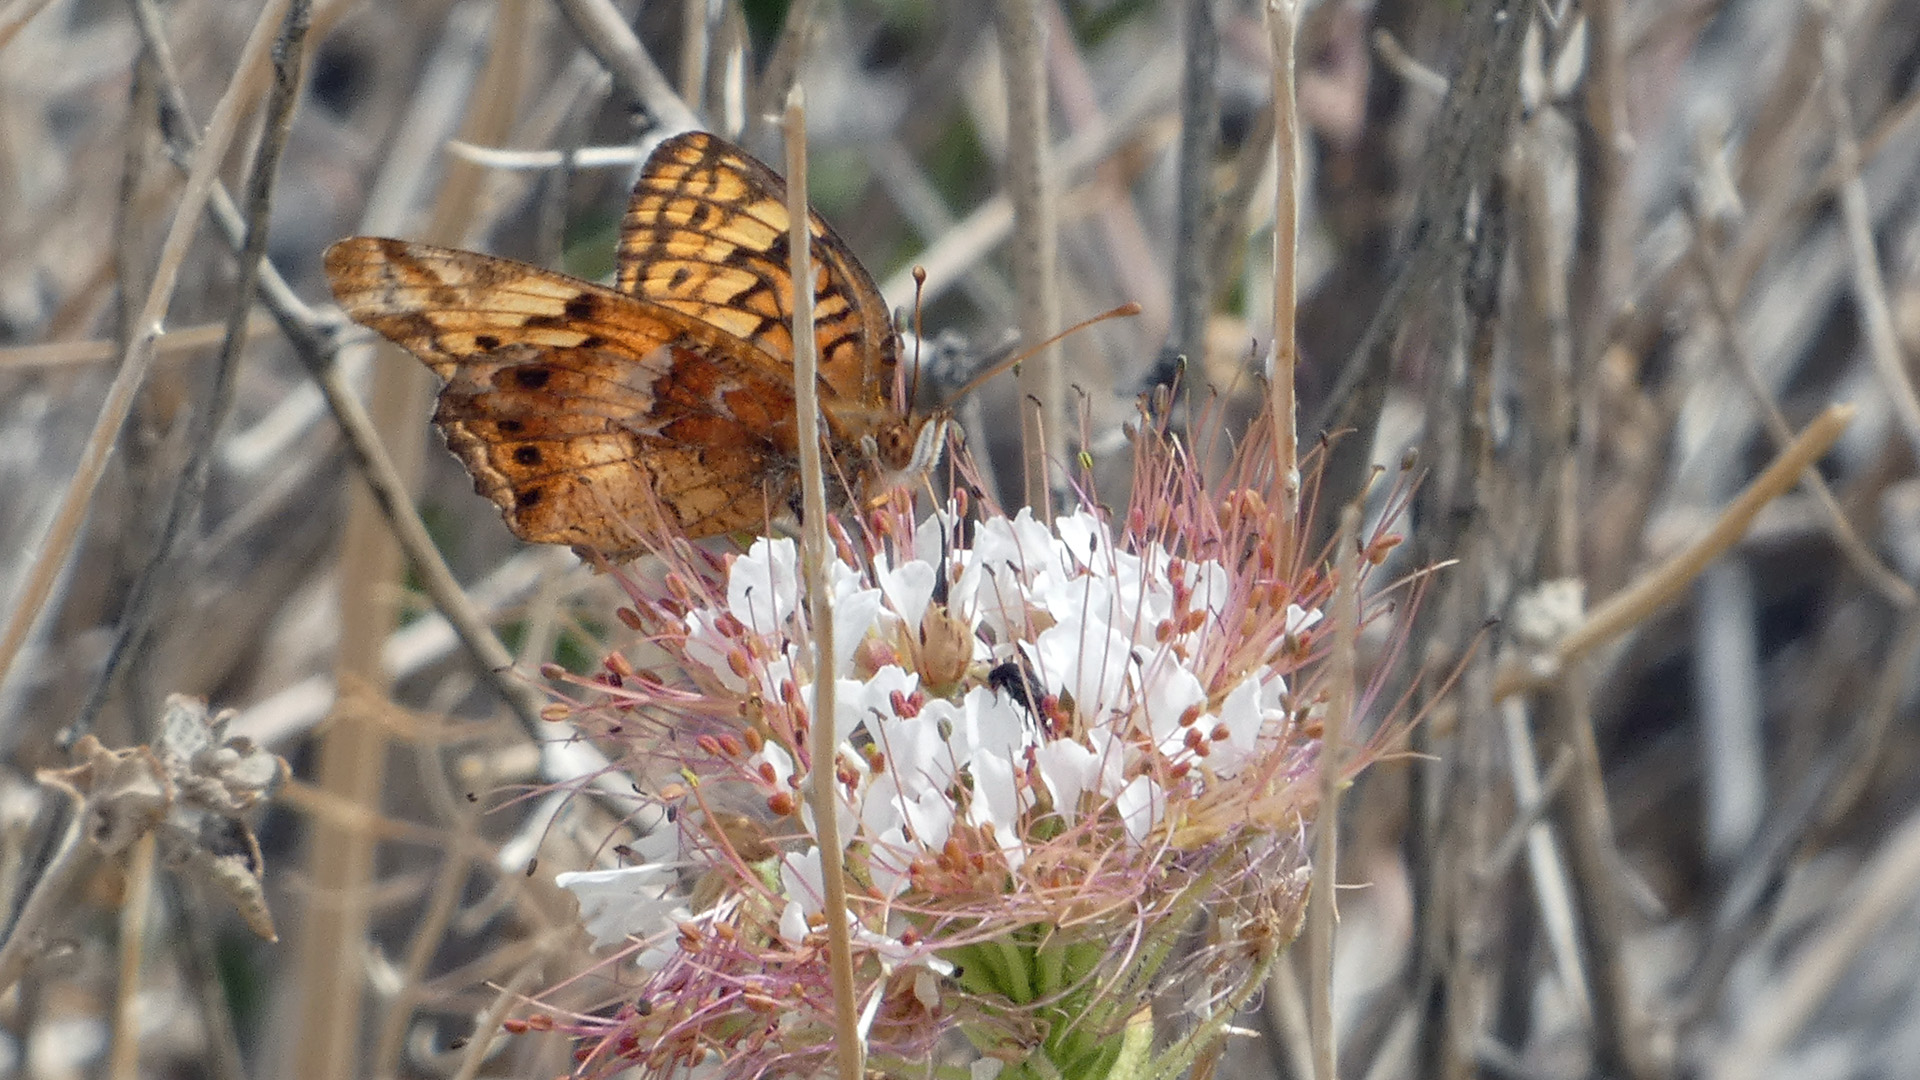 On red-whiskered clammyweed, Sandia Mountains west foothills, June 2021